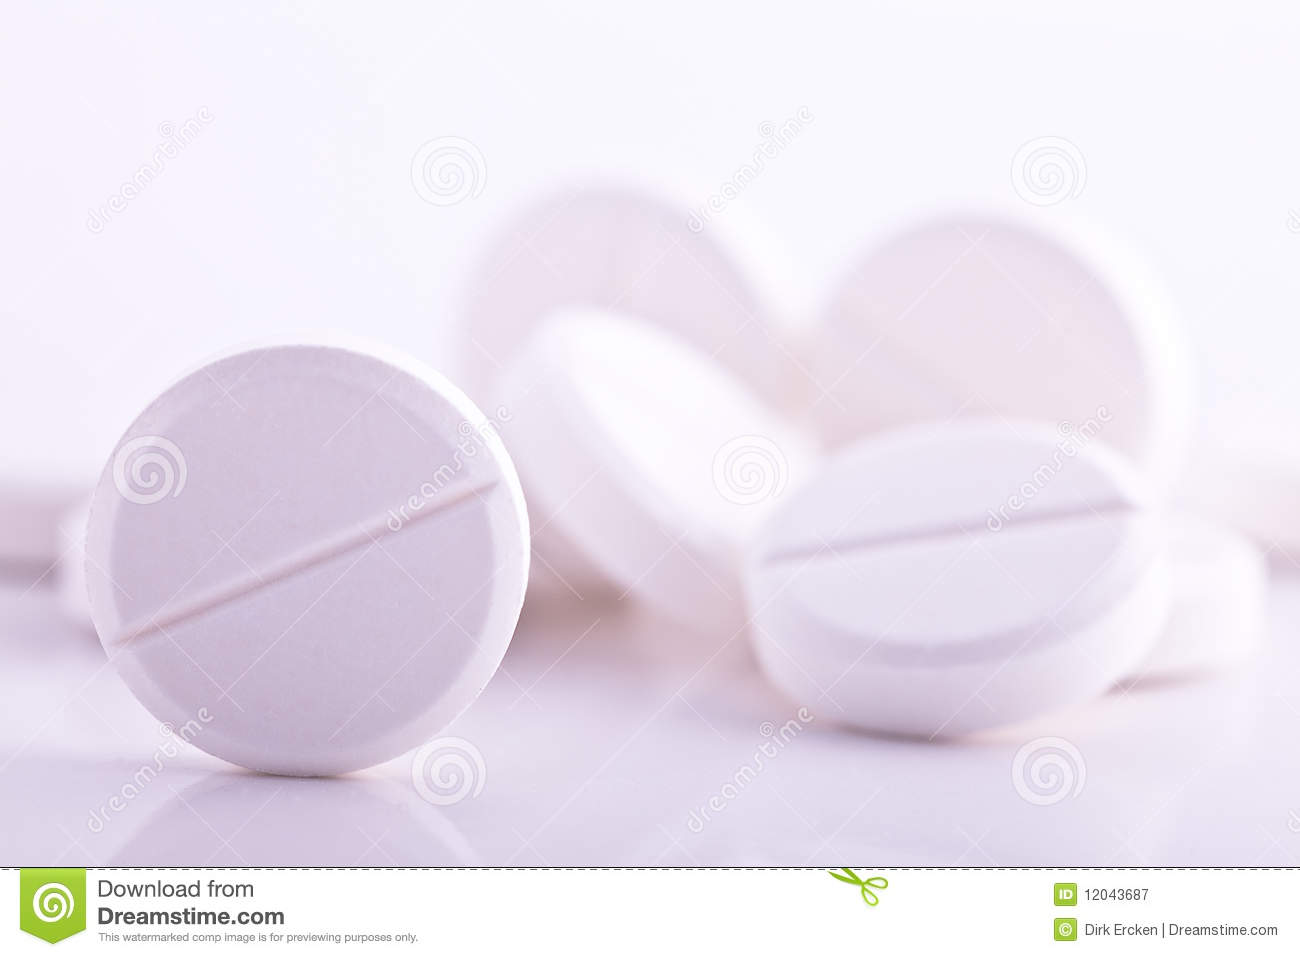 The Effects of Aspirin and Acetaminophen on the Stomach in Healthy Volunteers